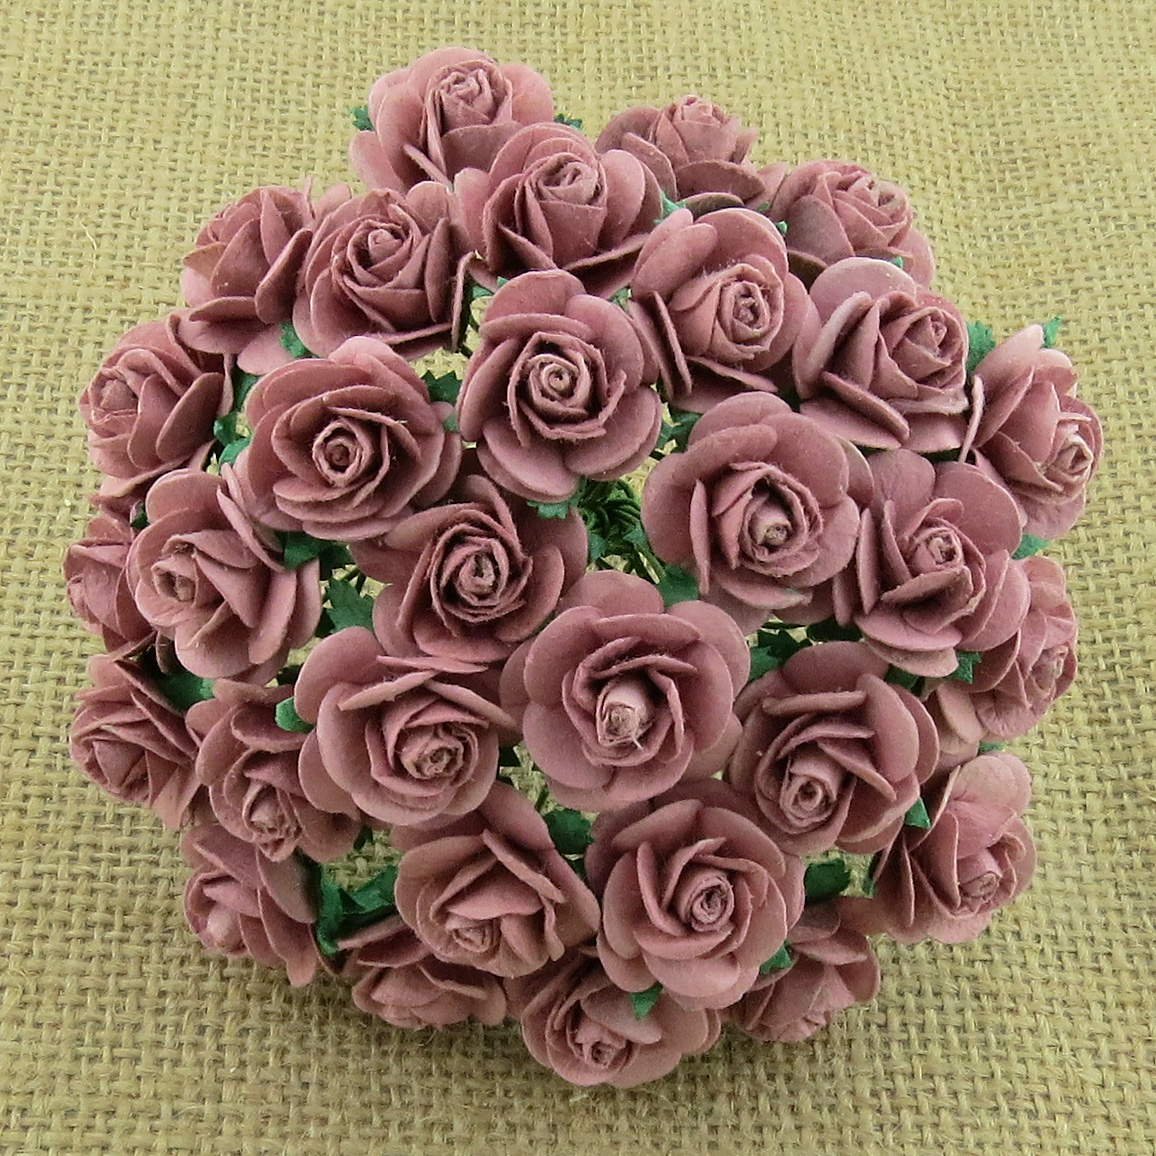 All Products Promlee Flowers Wholesale Mulberry Paper Flowers